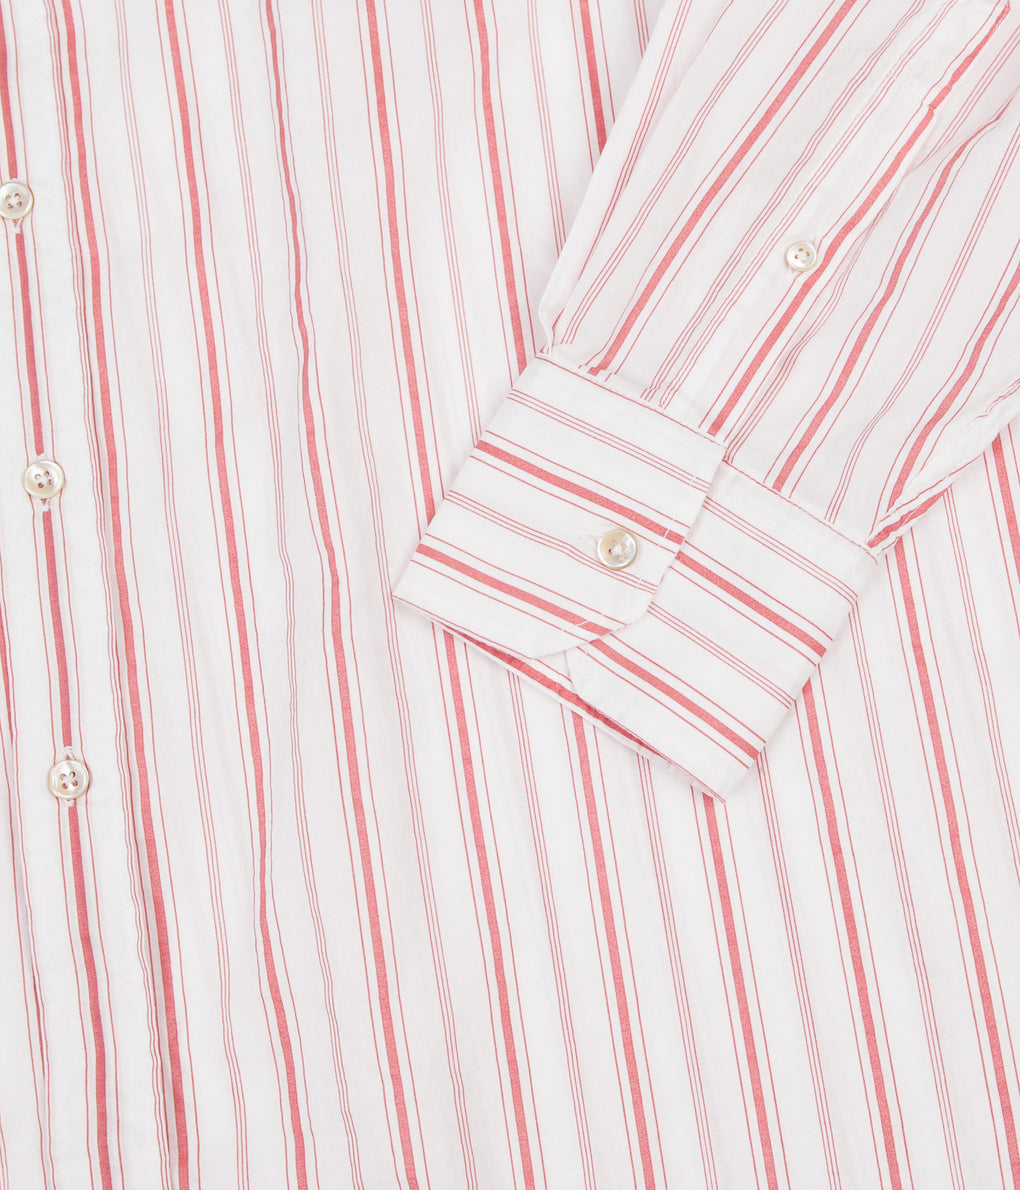 Our Legacy Borrowed BD Shirt - Printed Red Stripe